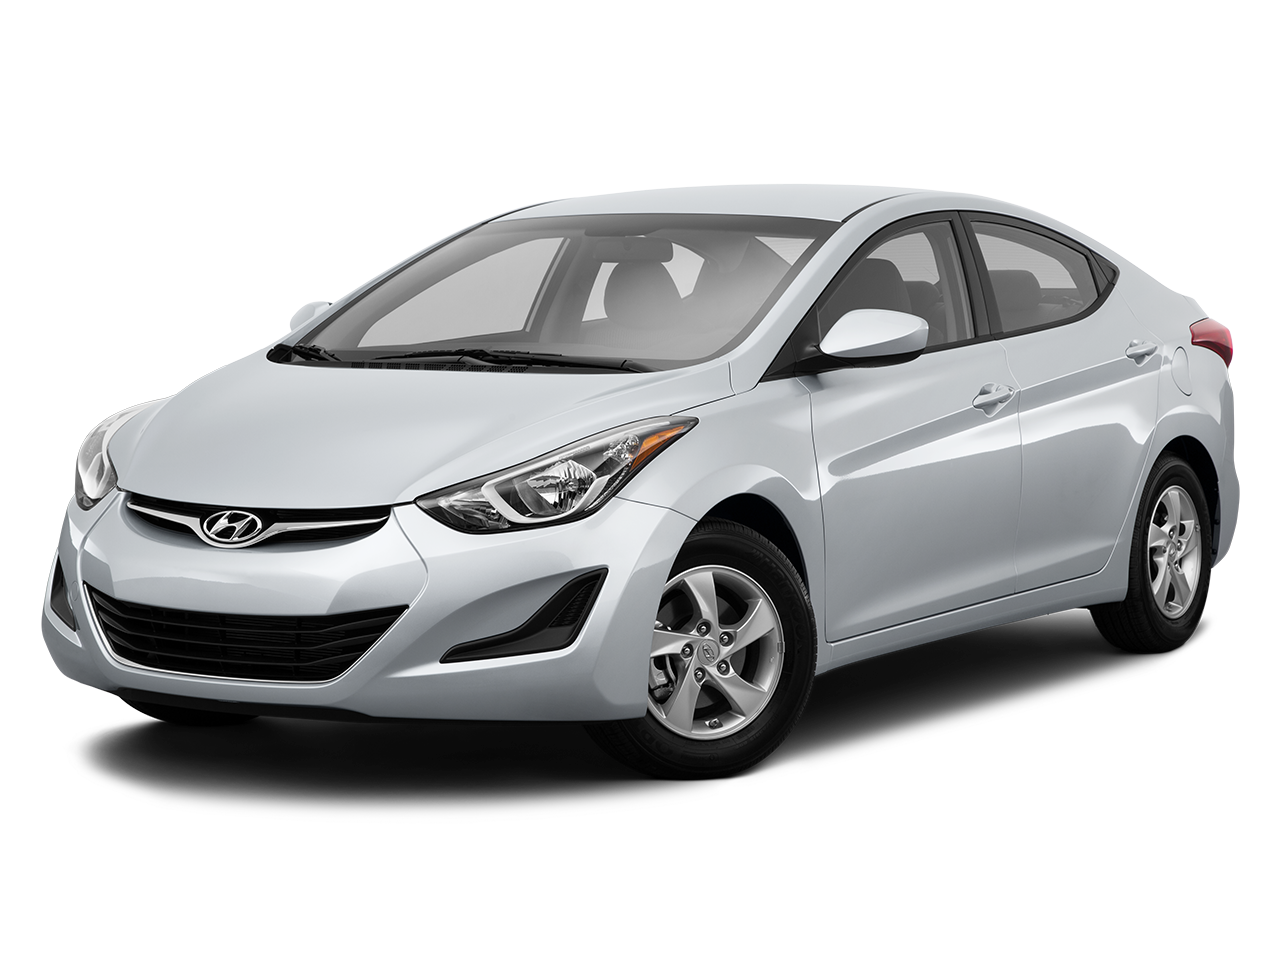 Hyundai Car Png Images All Models Free Download